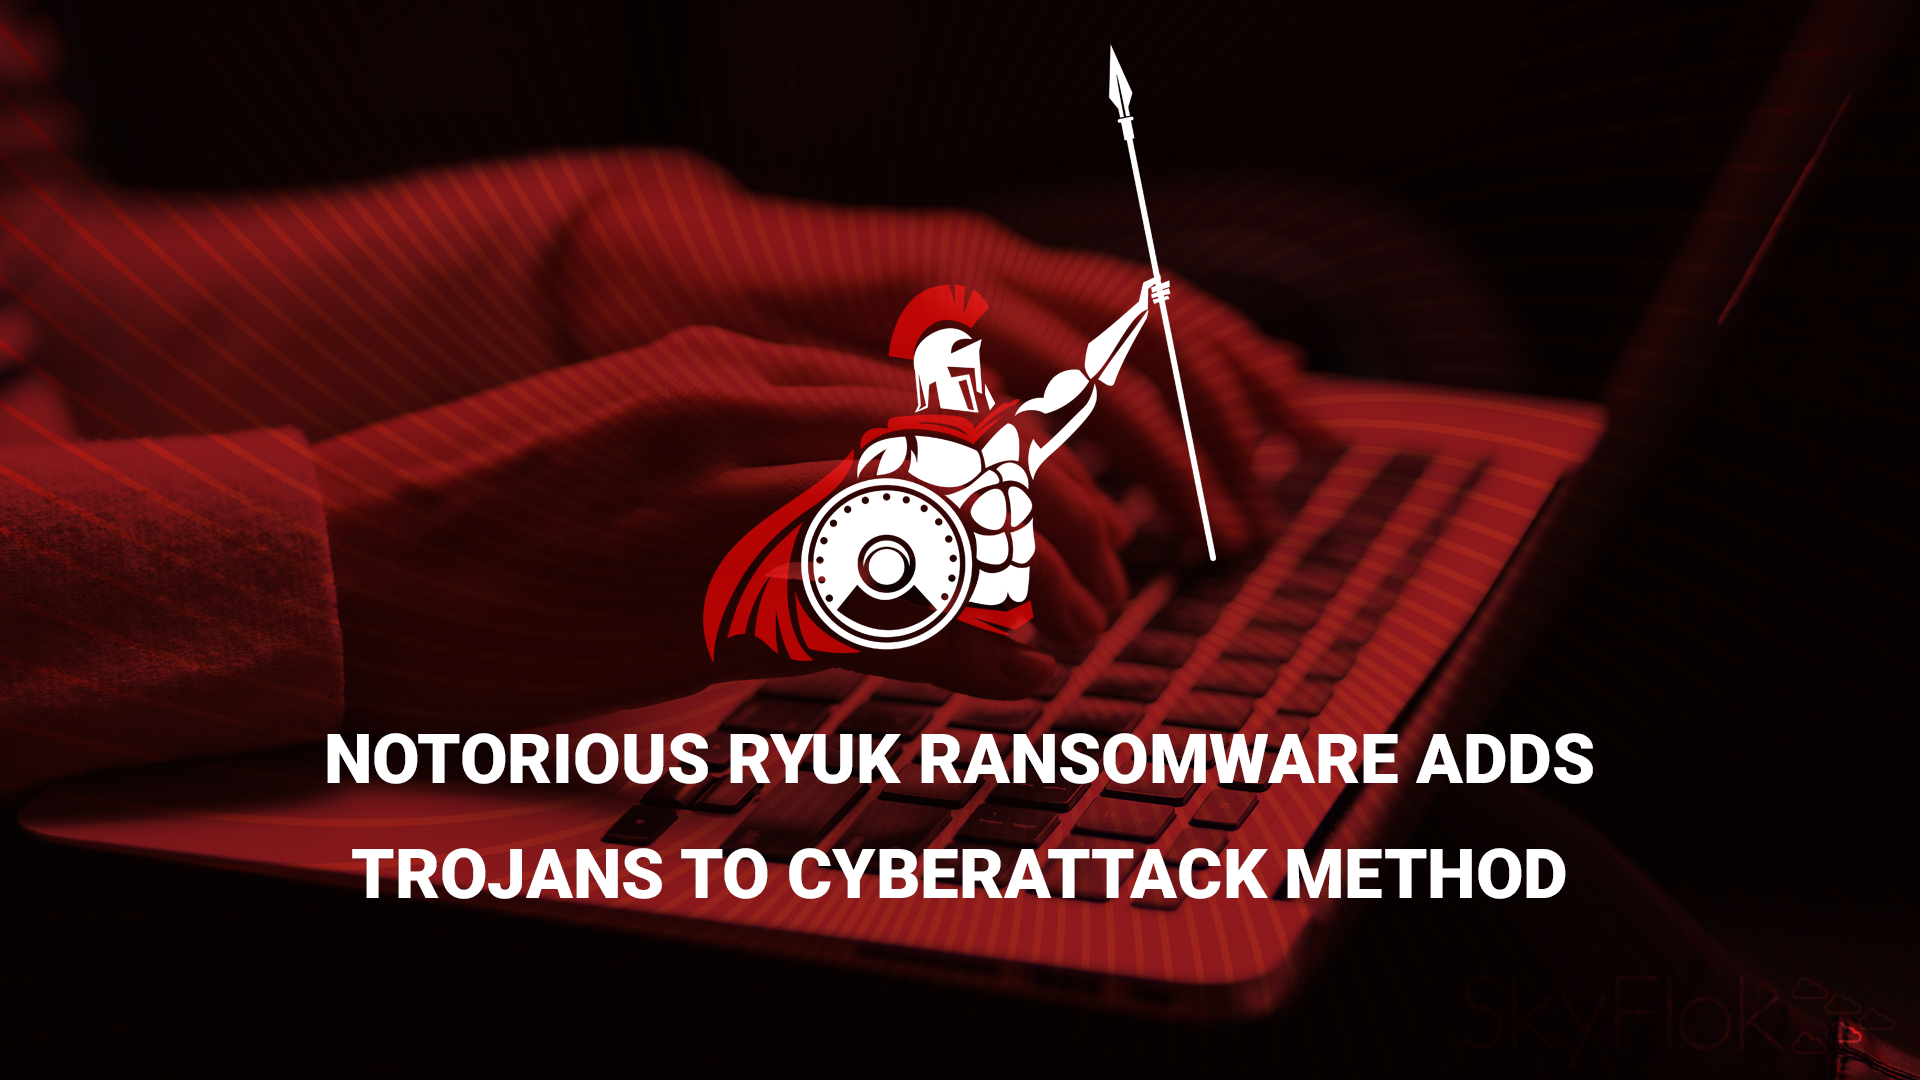 Notorious Ryuk Ransomware Adds Trojans to Cyberattack Method